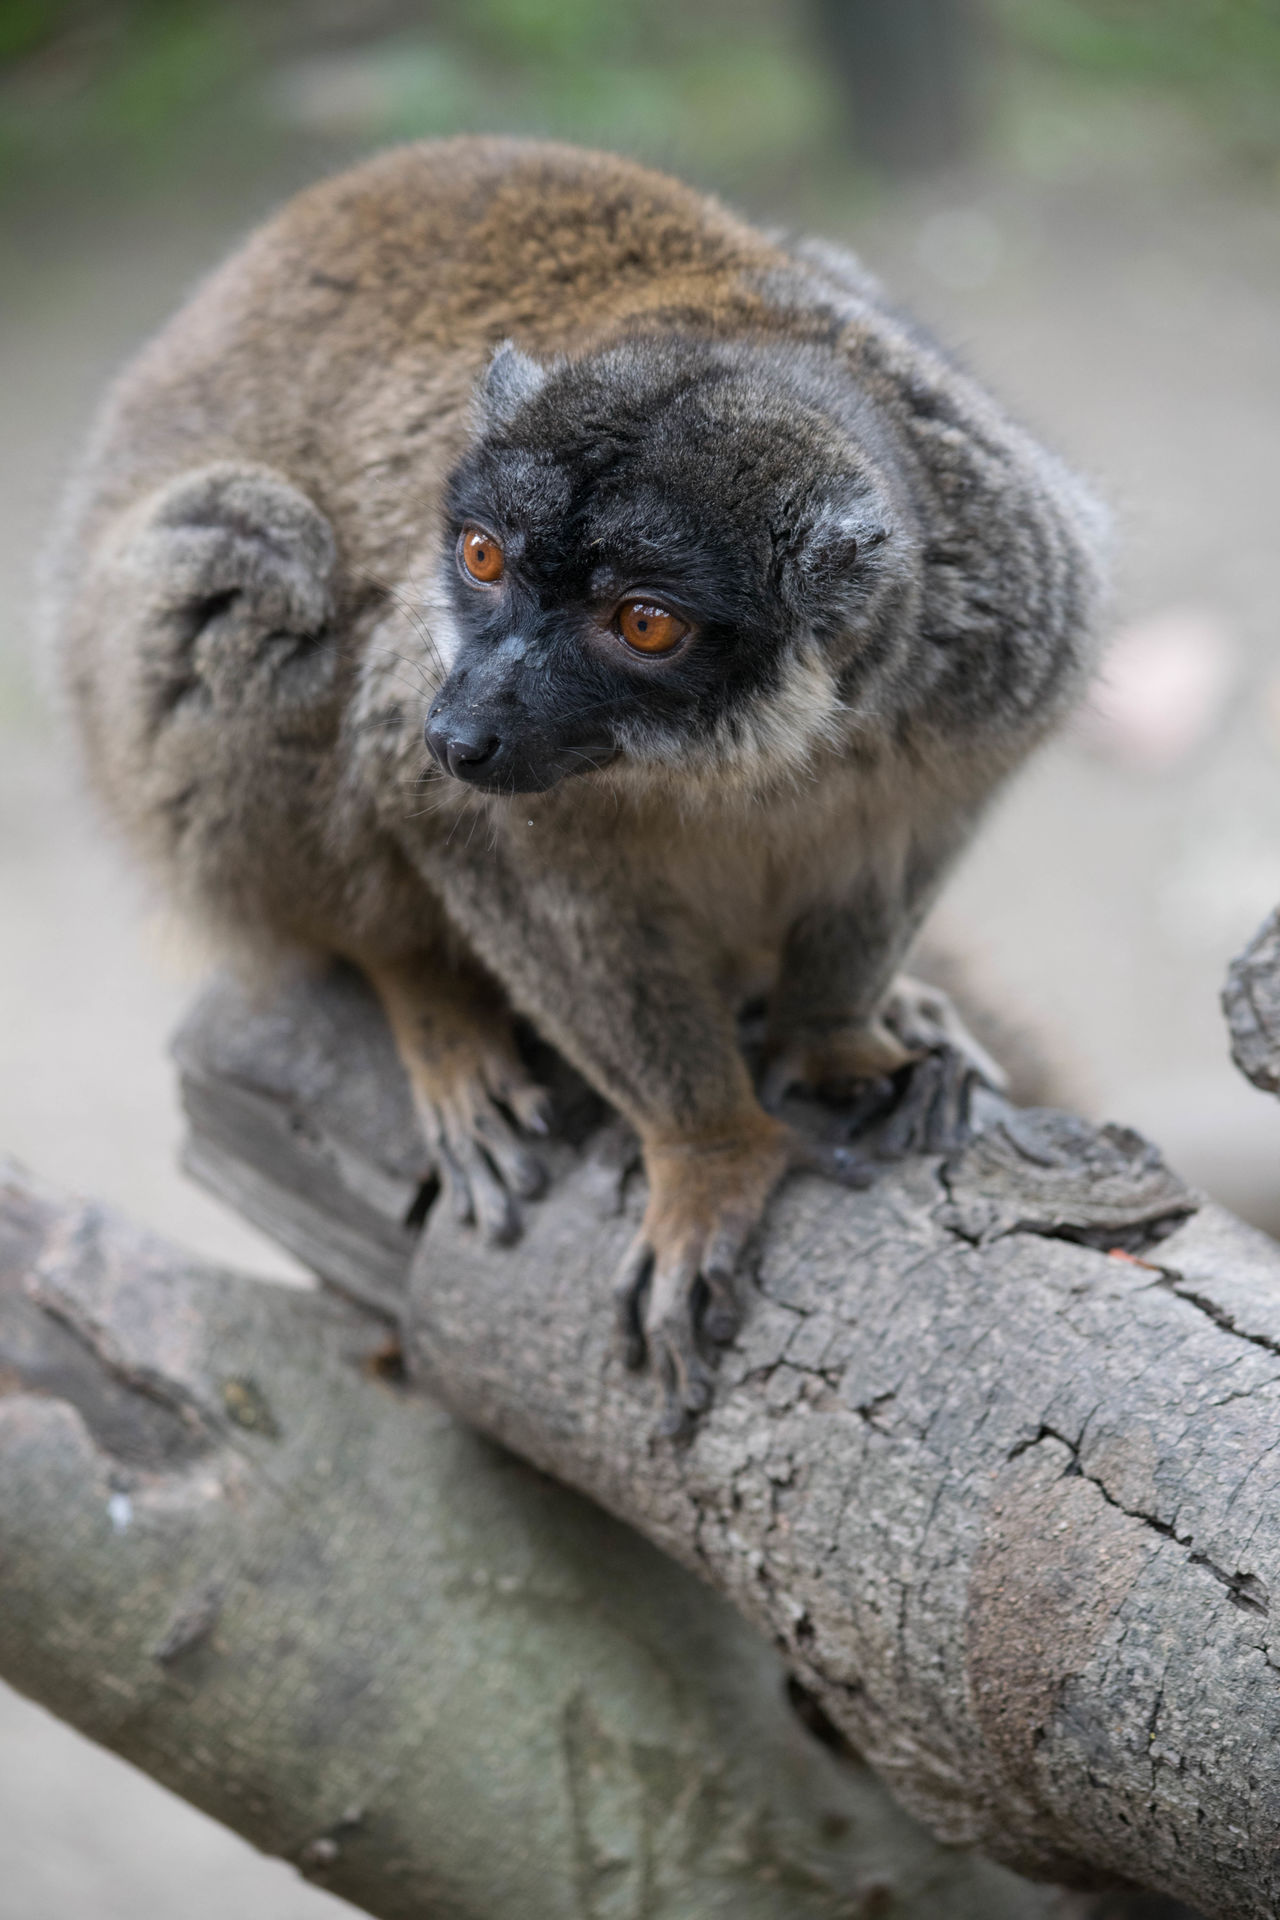 Animal Animal Photography Animal Themes Animal Wildlife Animals In The Wild Close-up Cute Day Exotic Creatures EyeEm Nature Lover Fluffy Lemur Lemurs Mammal Nature No People Outdoors SPAIN Tree Wildlife Wildlife & Nature Wildlife Photography Wildlife Photos Zoo Zoo Animals